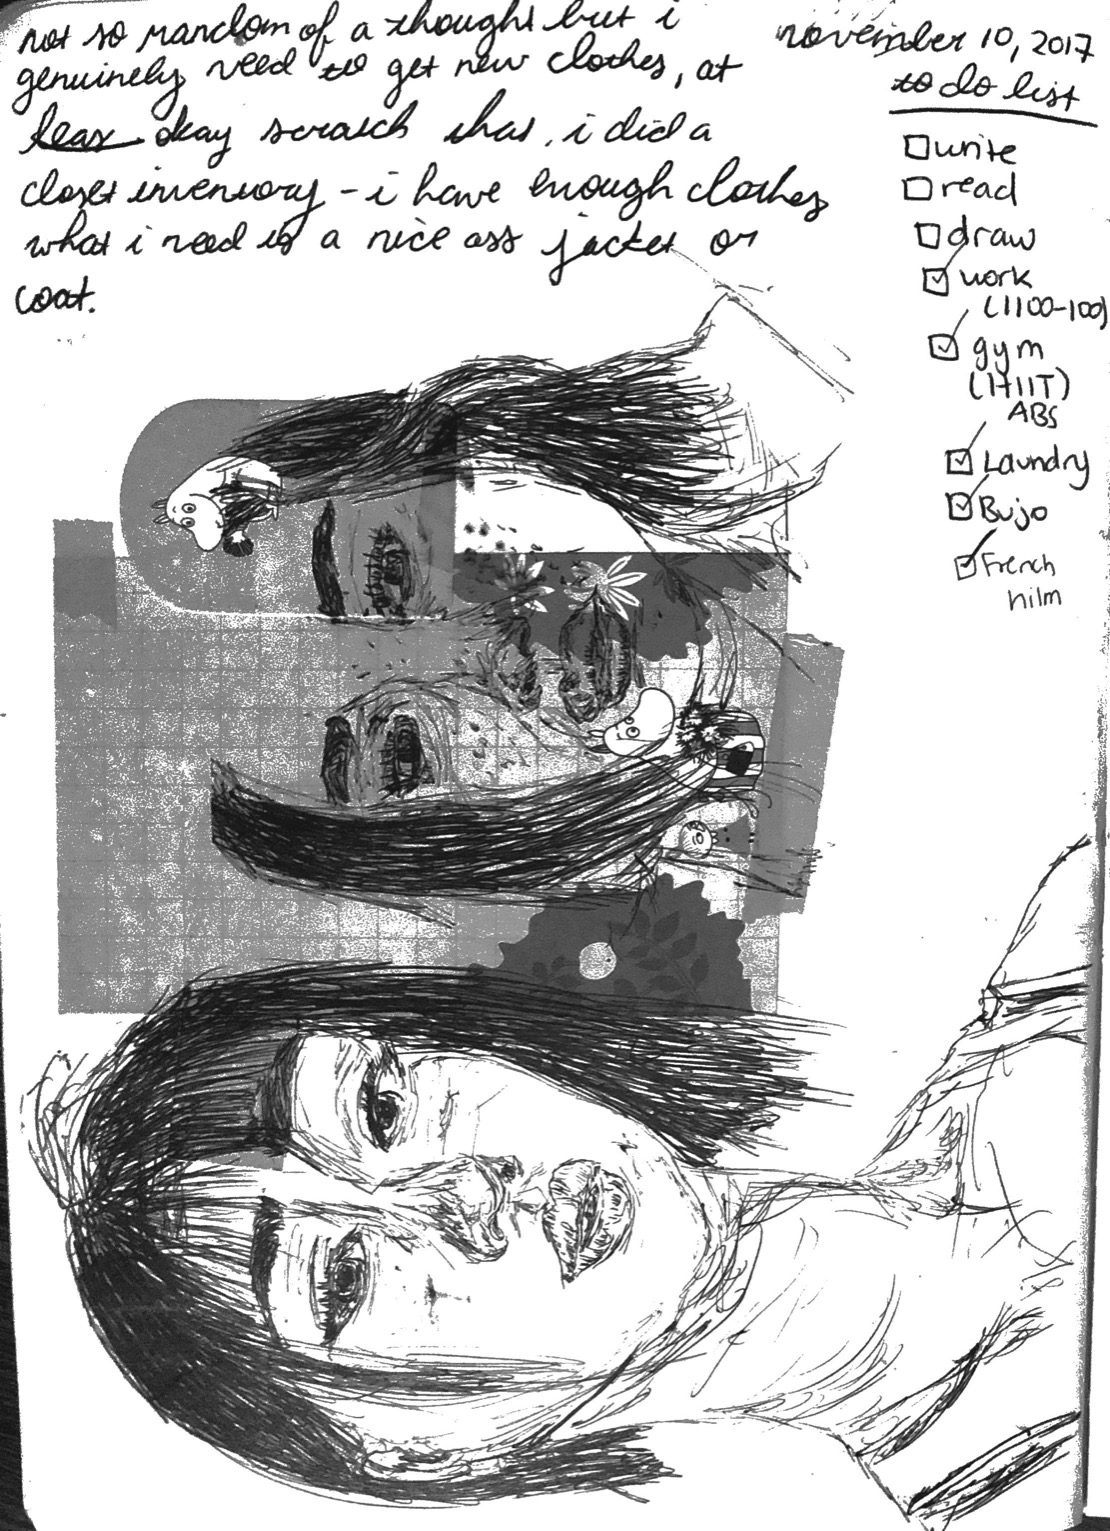 Journal Scans page 23.JPG